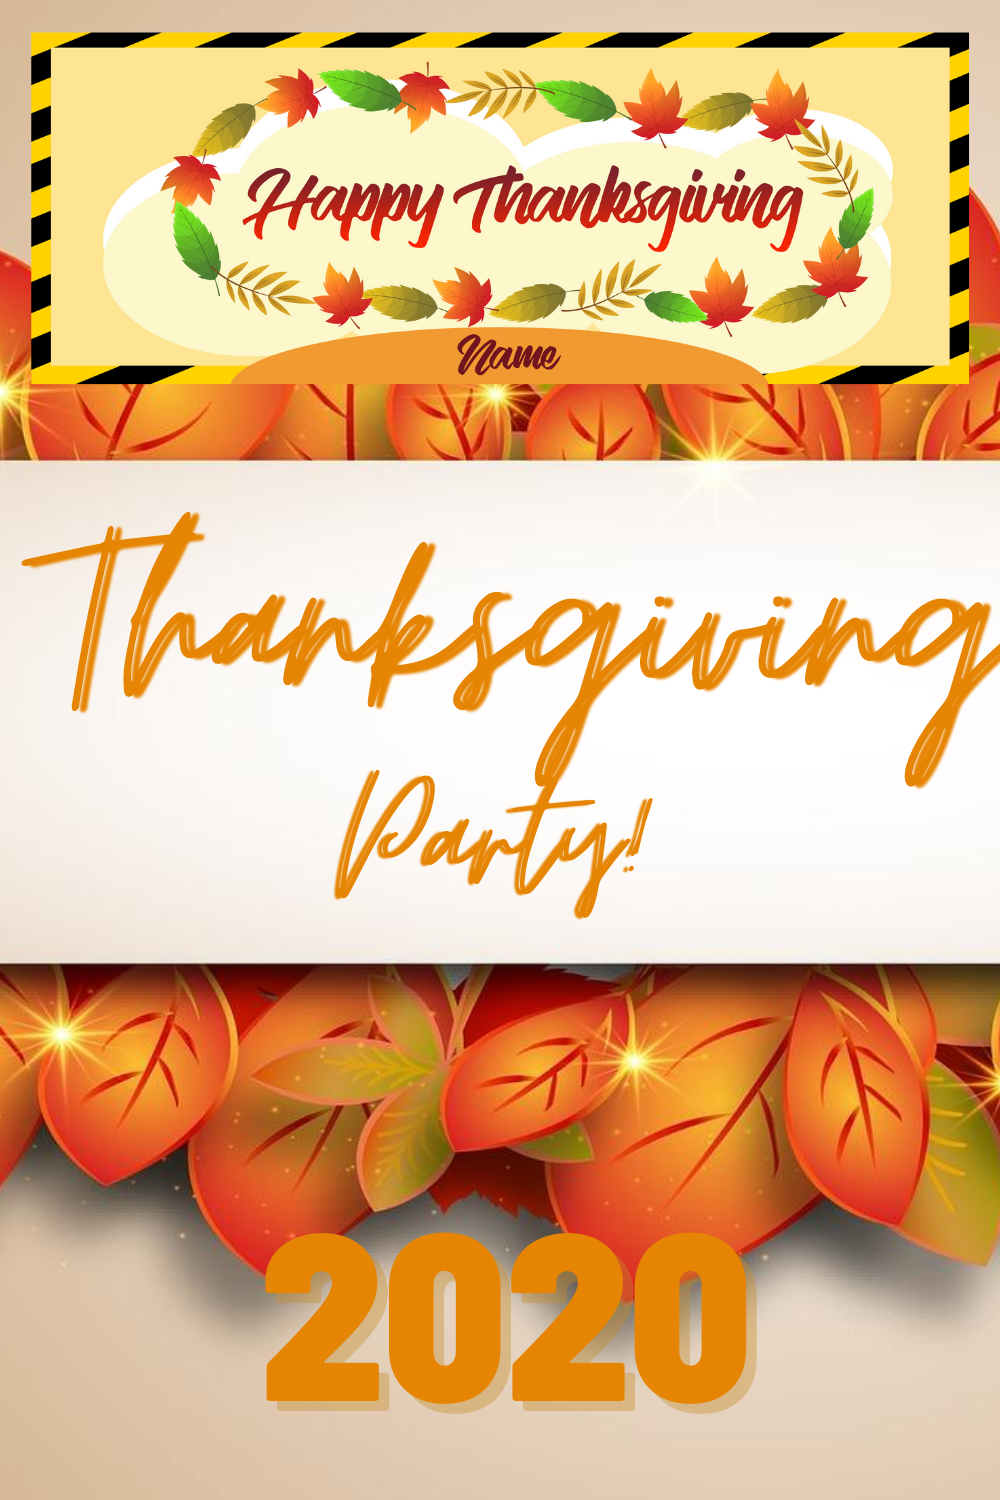 Element Greeting Happy Thanksgiving With Pumpkin And Leaf Maple Pumpkin Thanksgiving Png And Vector With Transparent Background For Free Download Happy Thanksgiving Day Thanksgiving Greetings Thanksgiving Greeting Cards